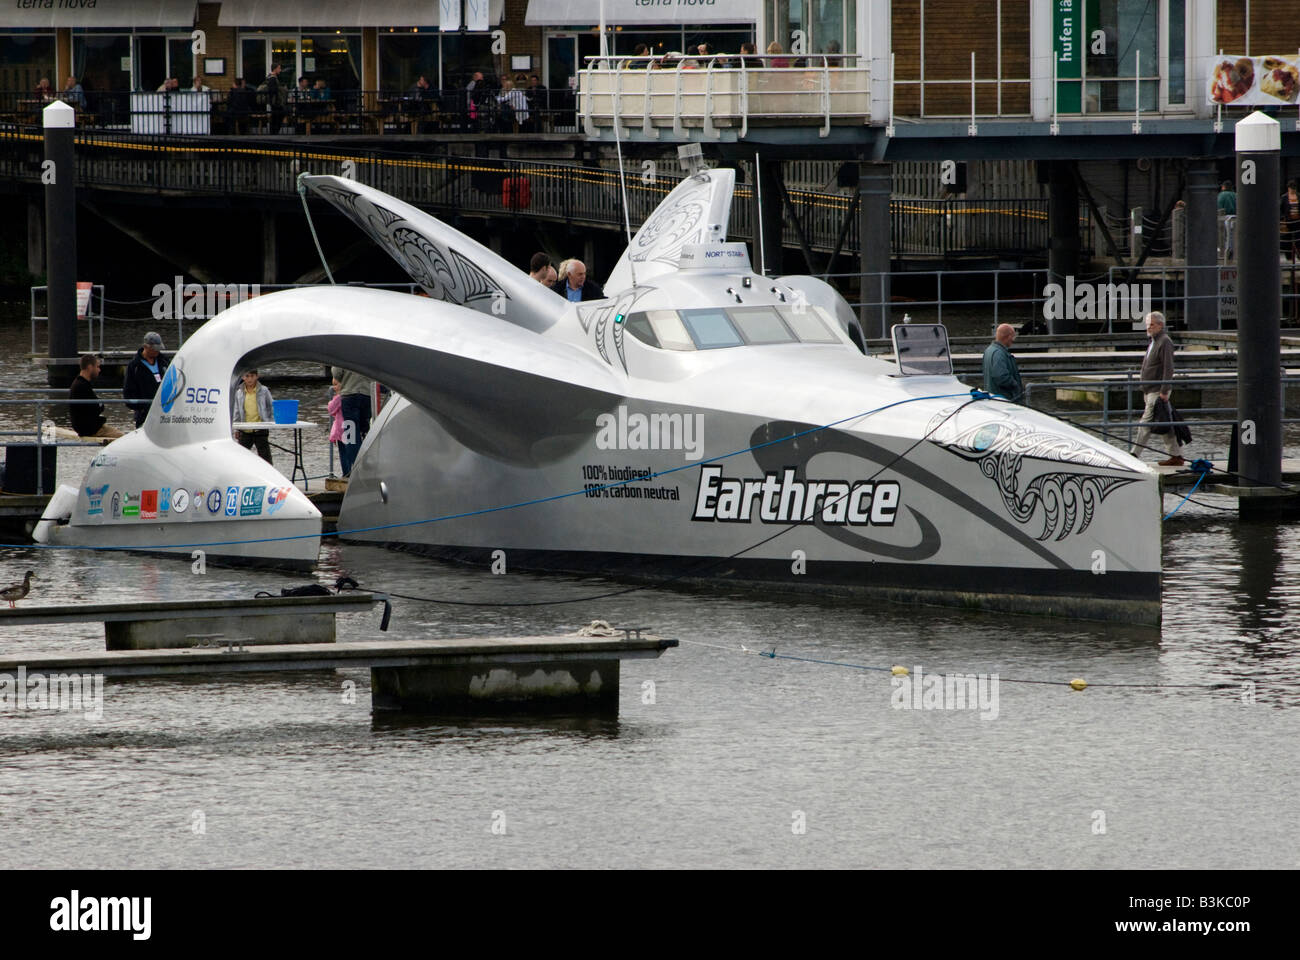 Fastest Boat Stock Photos & Fastest Boat Stock Images - Alamy